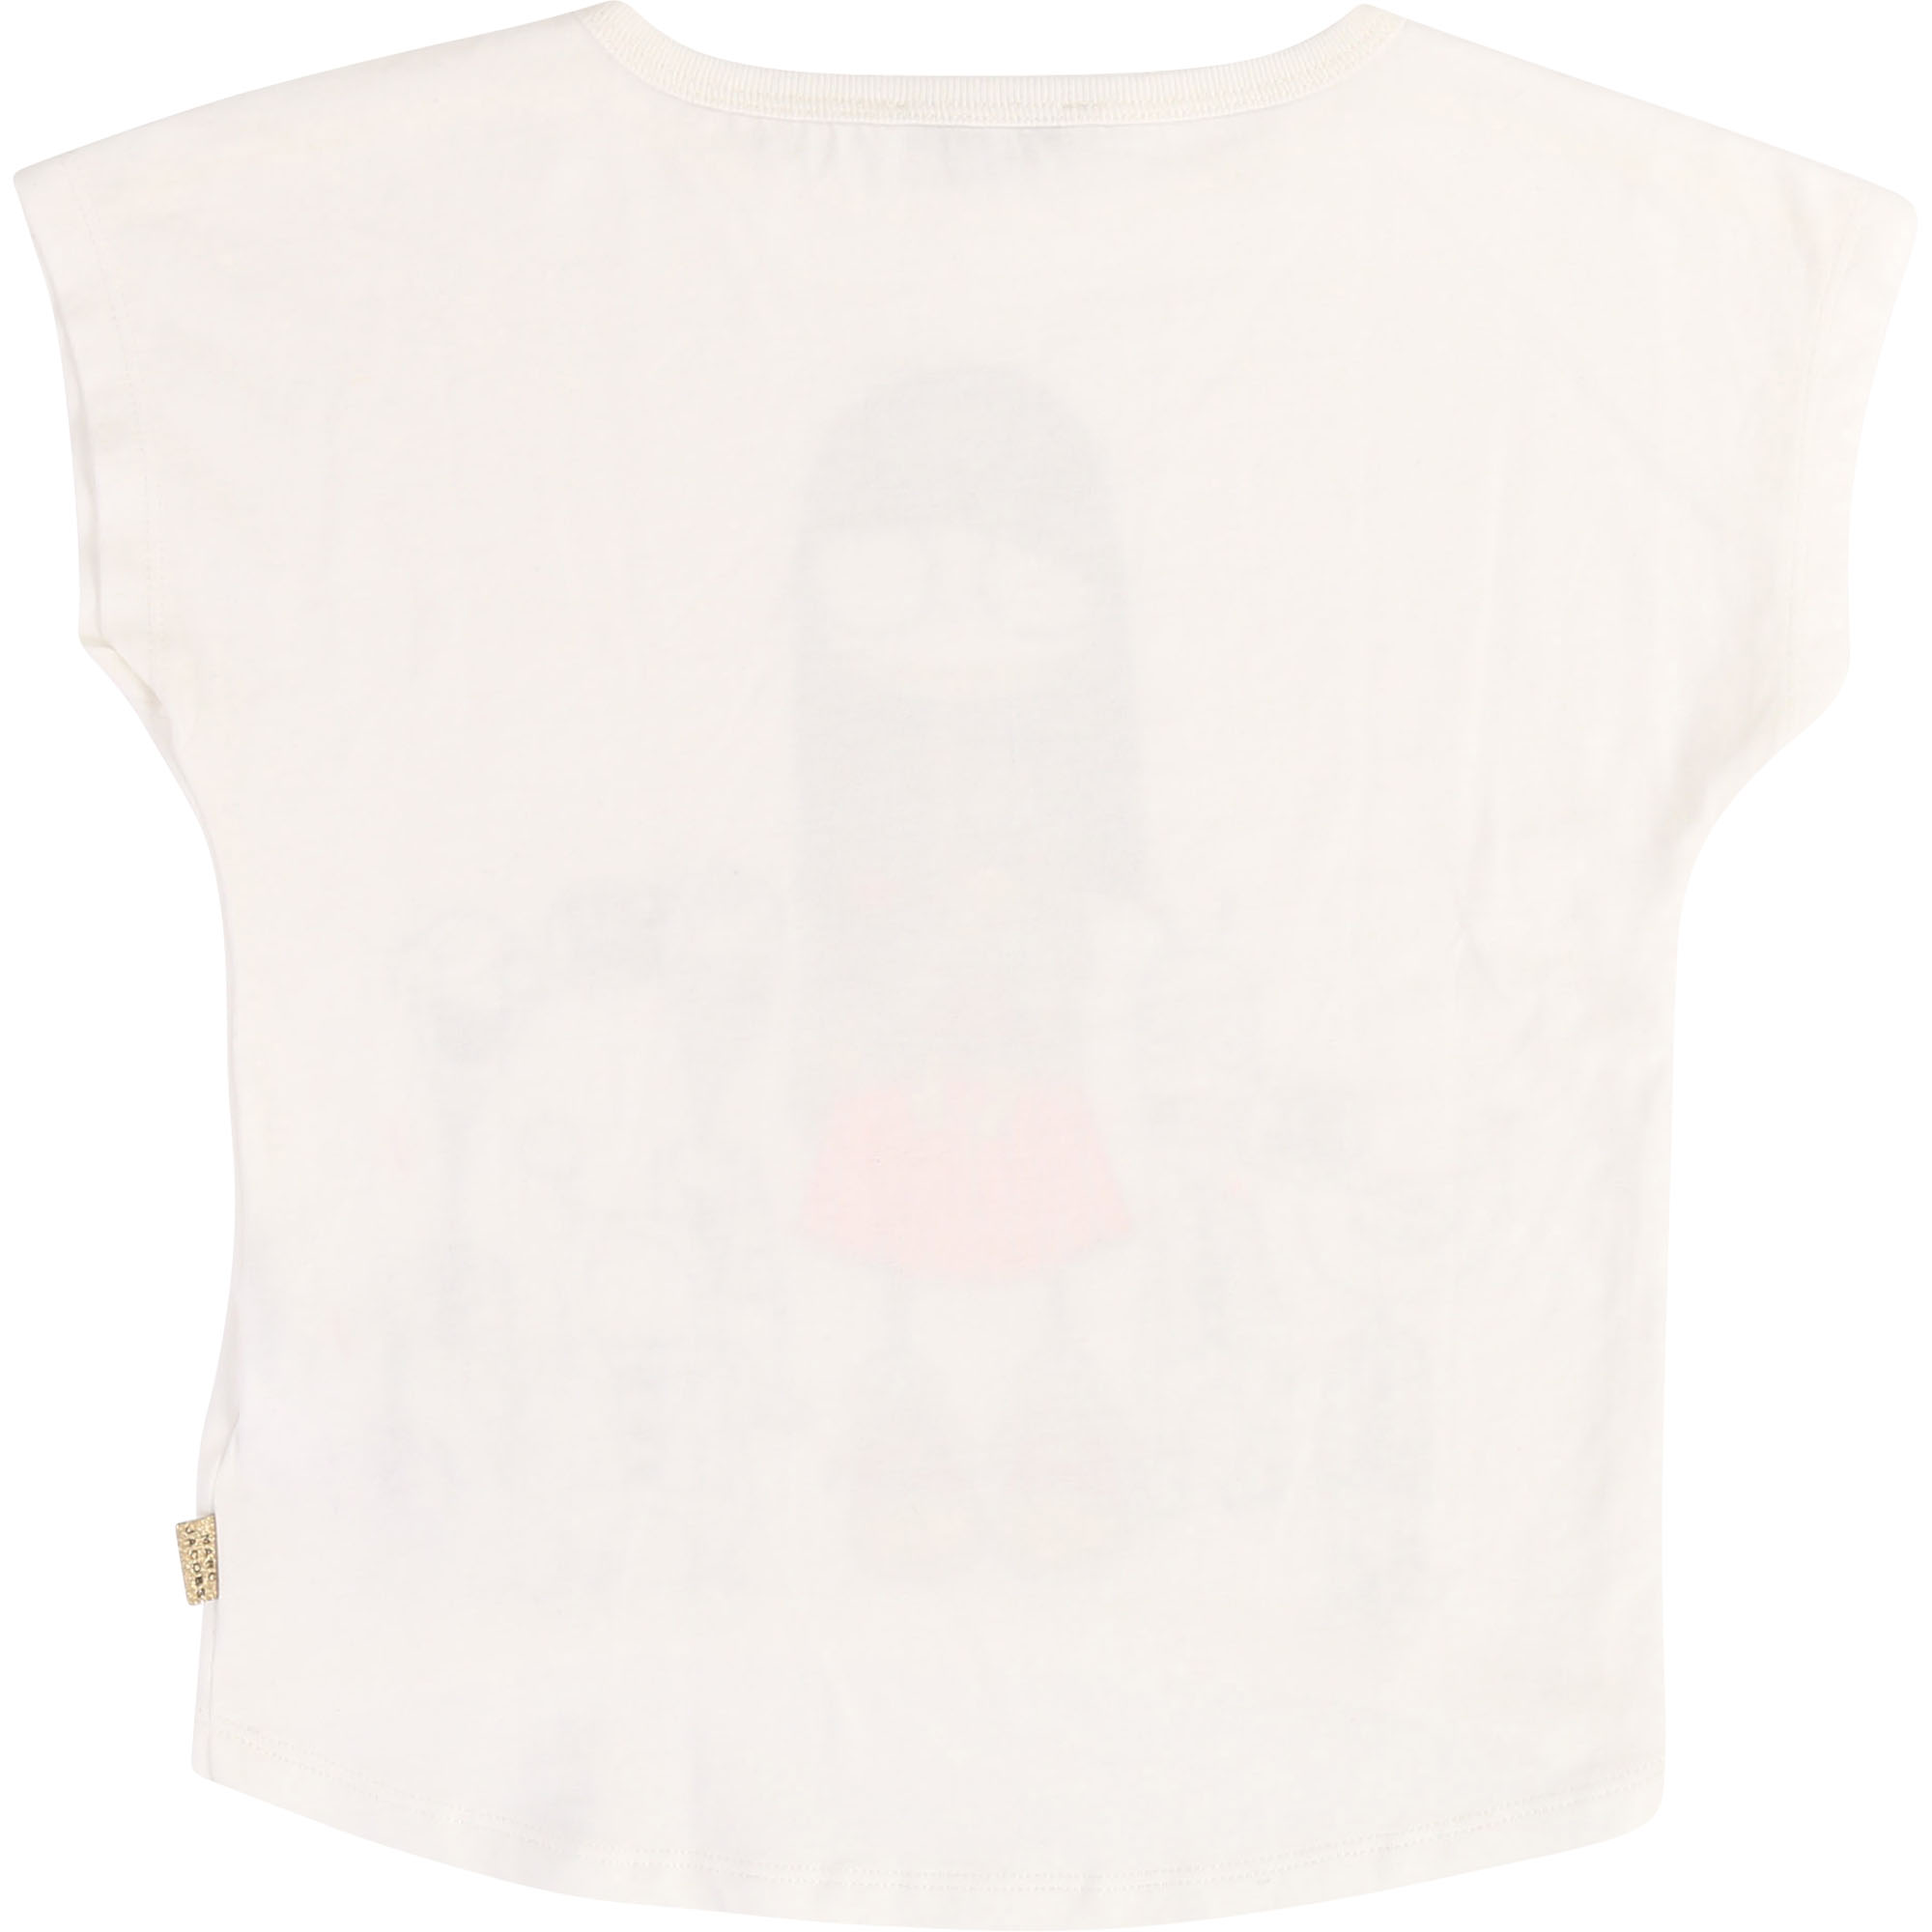 T-shirt in cotton and modal THE MARC JACOBS for GIRL